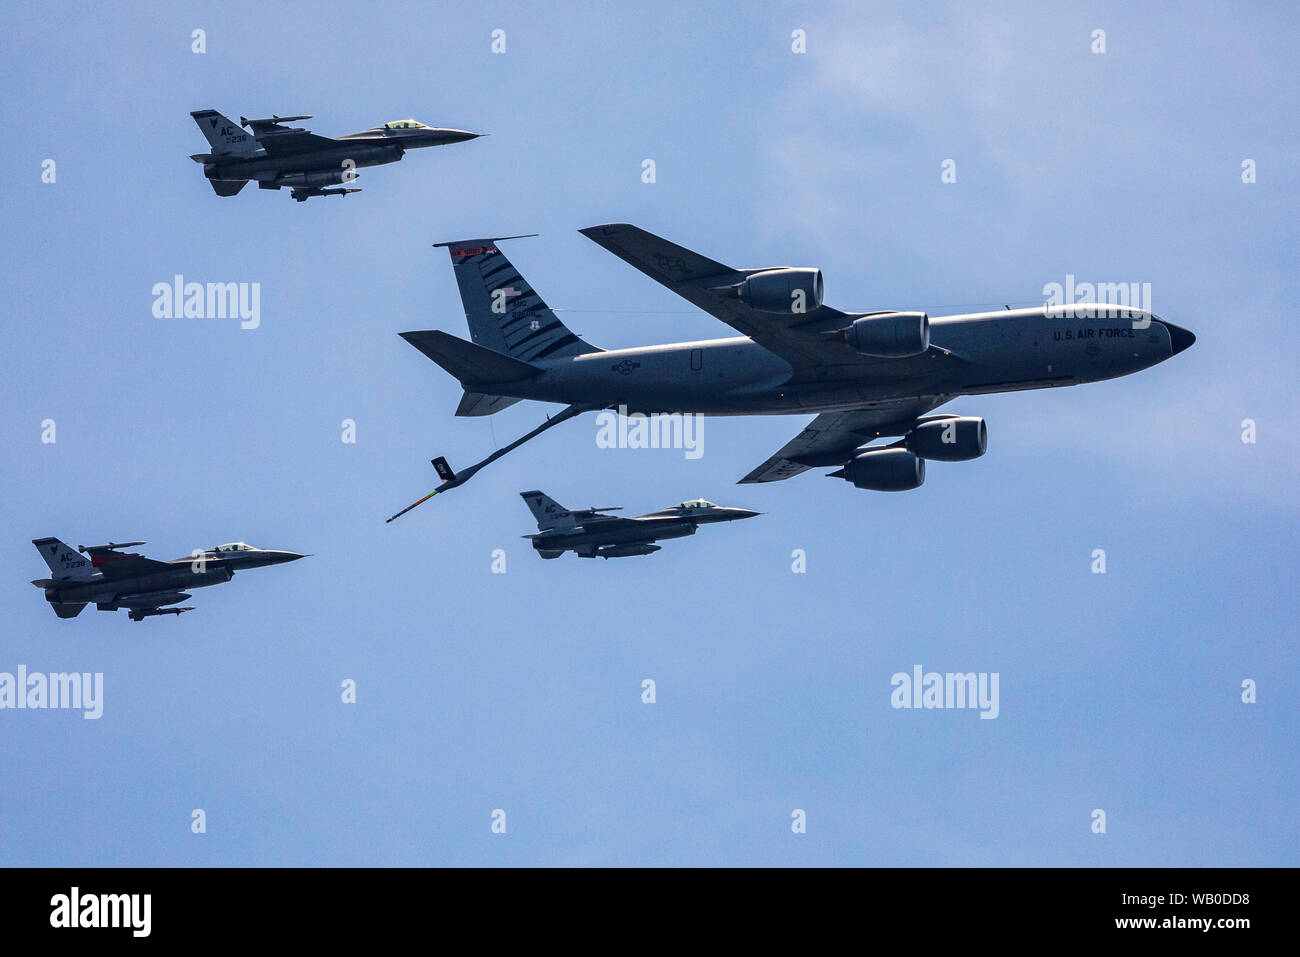 """A U.S. Air Force KC-135R Stratotanker with the New Jersey Air National Guard's 108th Wing and F-16 Fighting Falcons with the 177th Fighter Wing simulate a mid-air refueling during the 2019 Atlantic City International Airshow """"A Salute To Those That Serve"""" at Atlantic City, N.J., Aug. 21, 2019. (New Jersey National Guard photo by Mark C. Olsen) Stock Photo"""